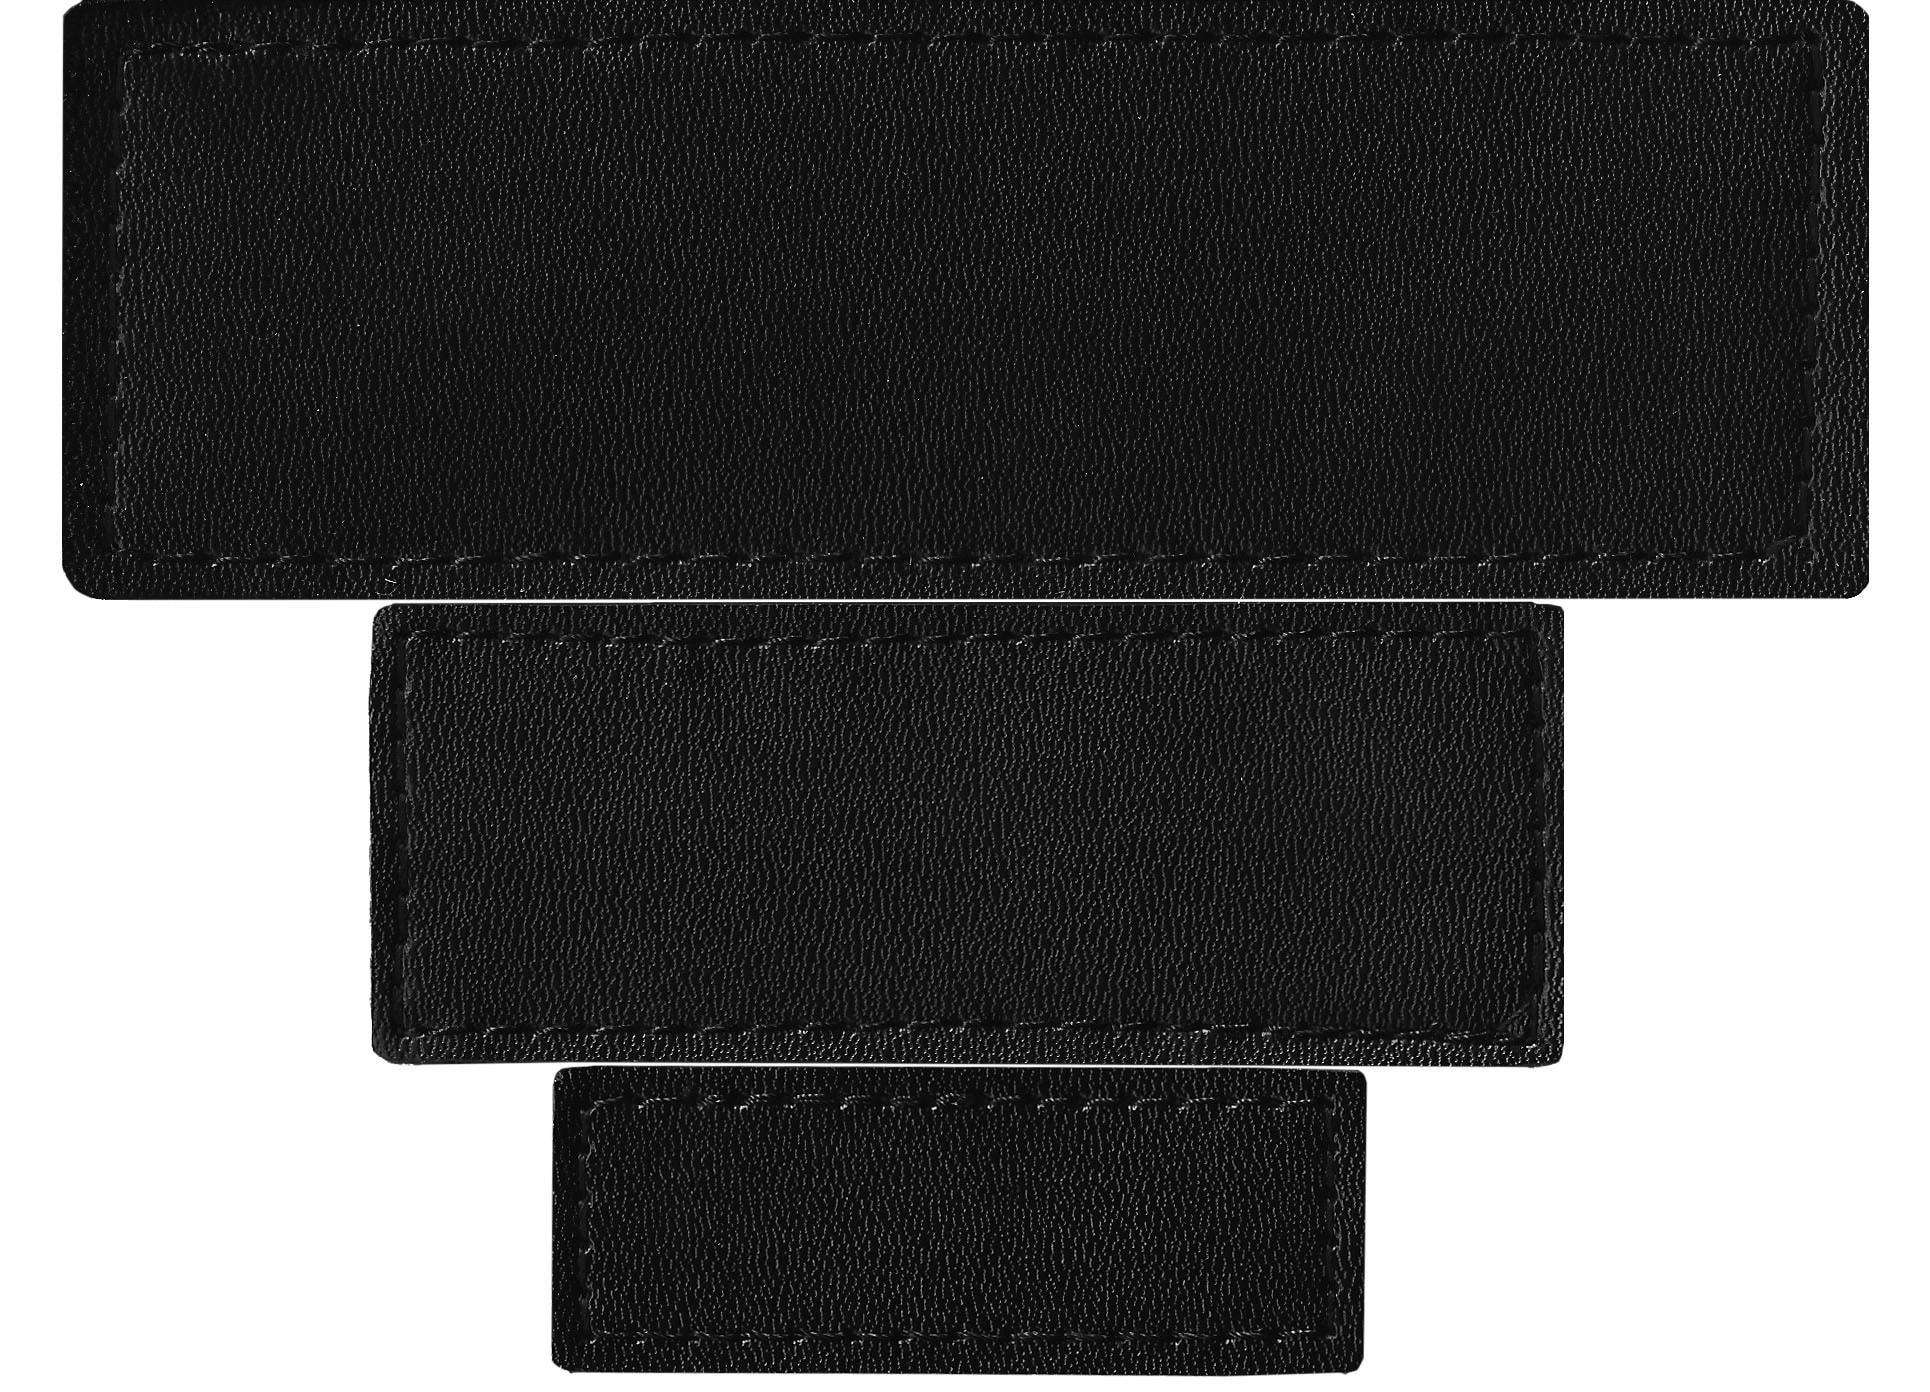 Dogline Velcro Patches Quot Blank Quot 2 Pack